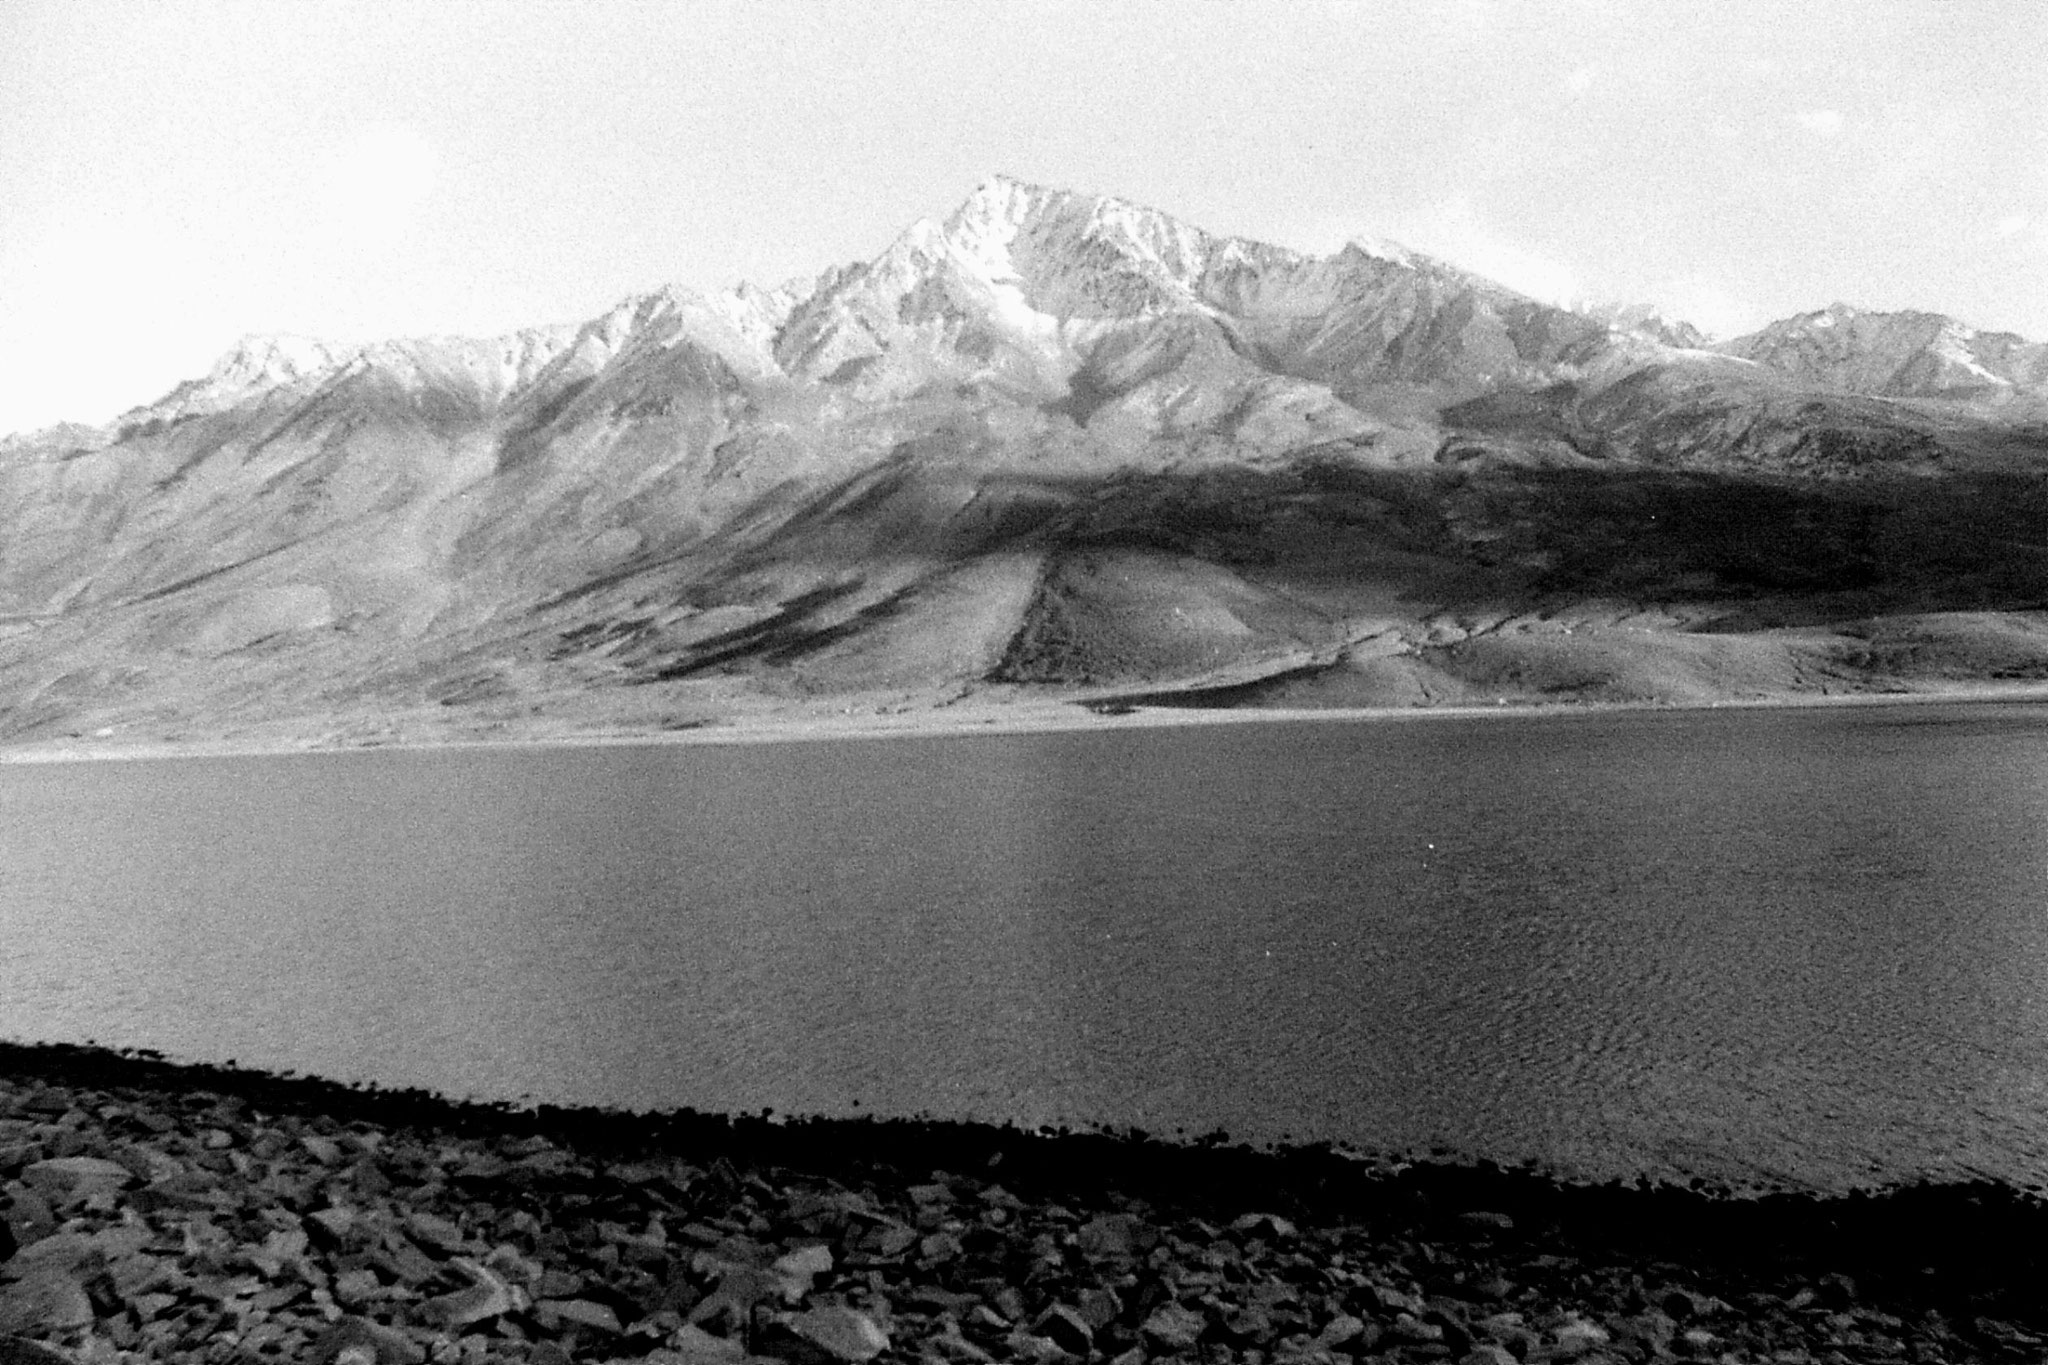 26/10/1989: 16: Shandar Pass, lake and mountain on south side